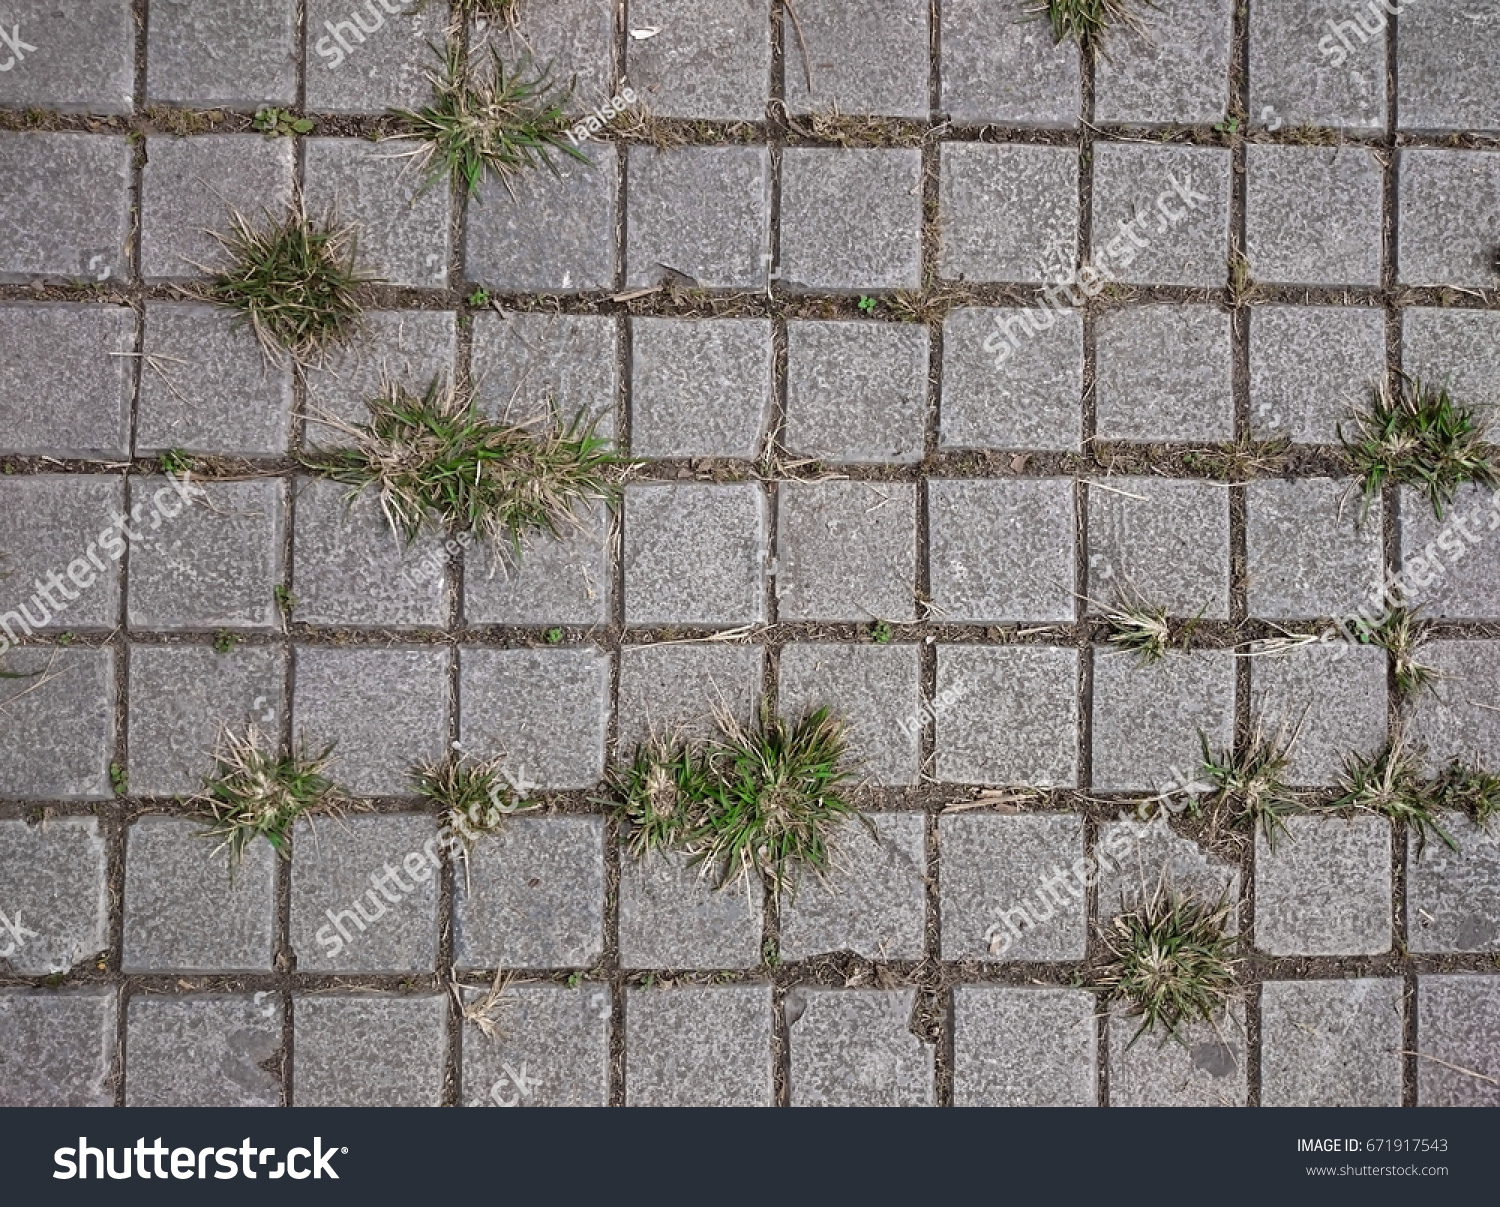 Square grey tiles on floor green stock photo 671917543 shutterstock square grey tiles on the floor with green grass and moss in the rifts rusty dailygadgetfo Images